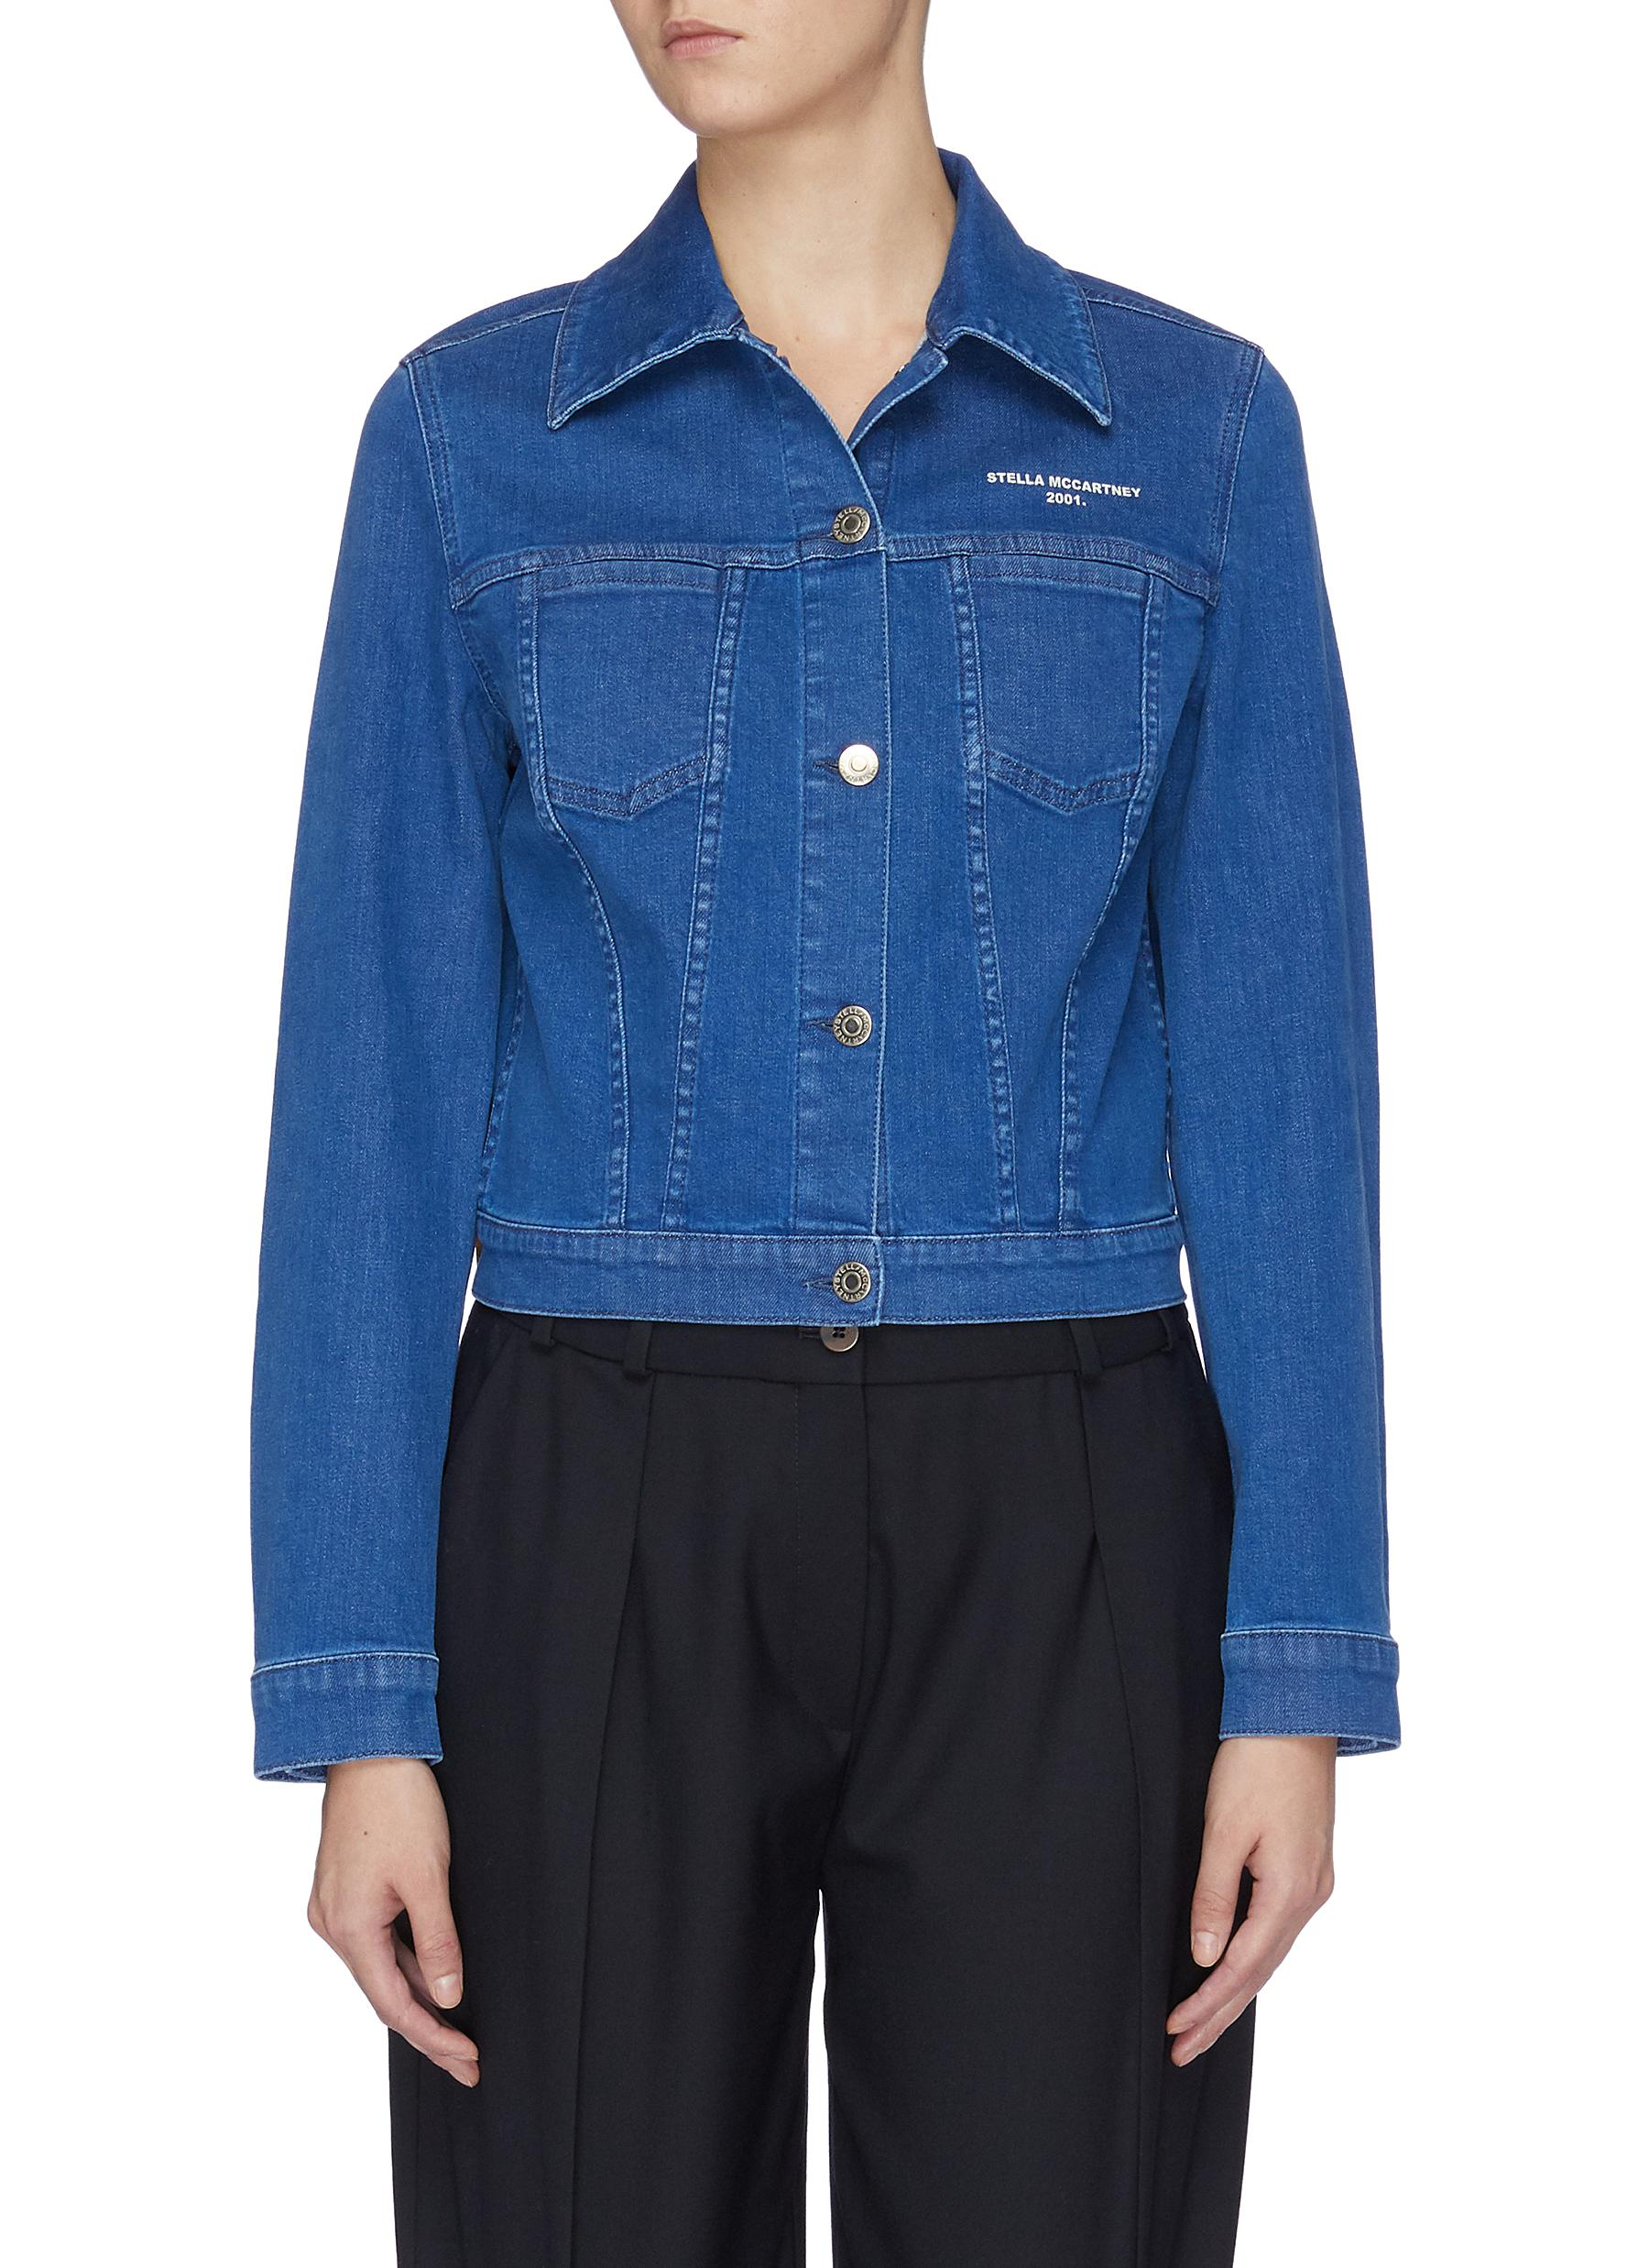 Stella 2001 logo print cropped denim jacket by Stella Mccartney